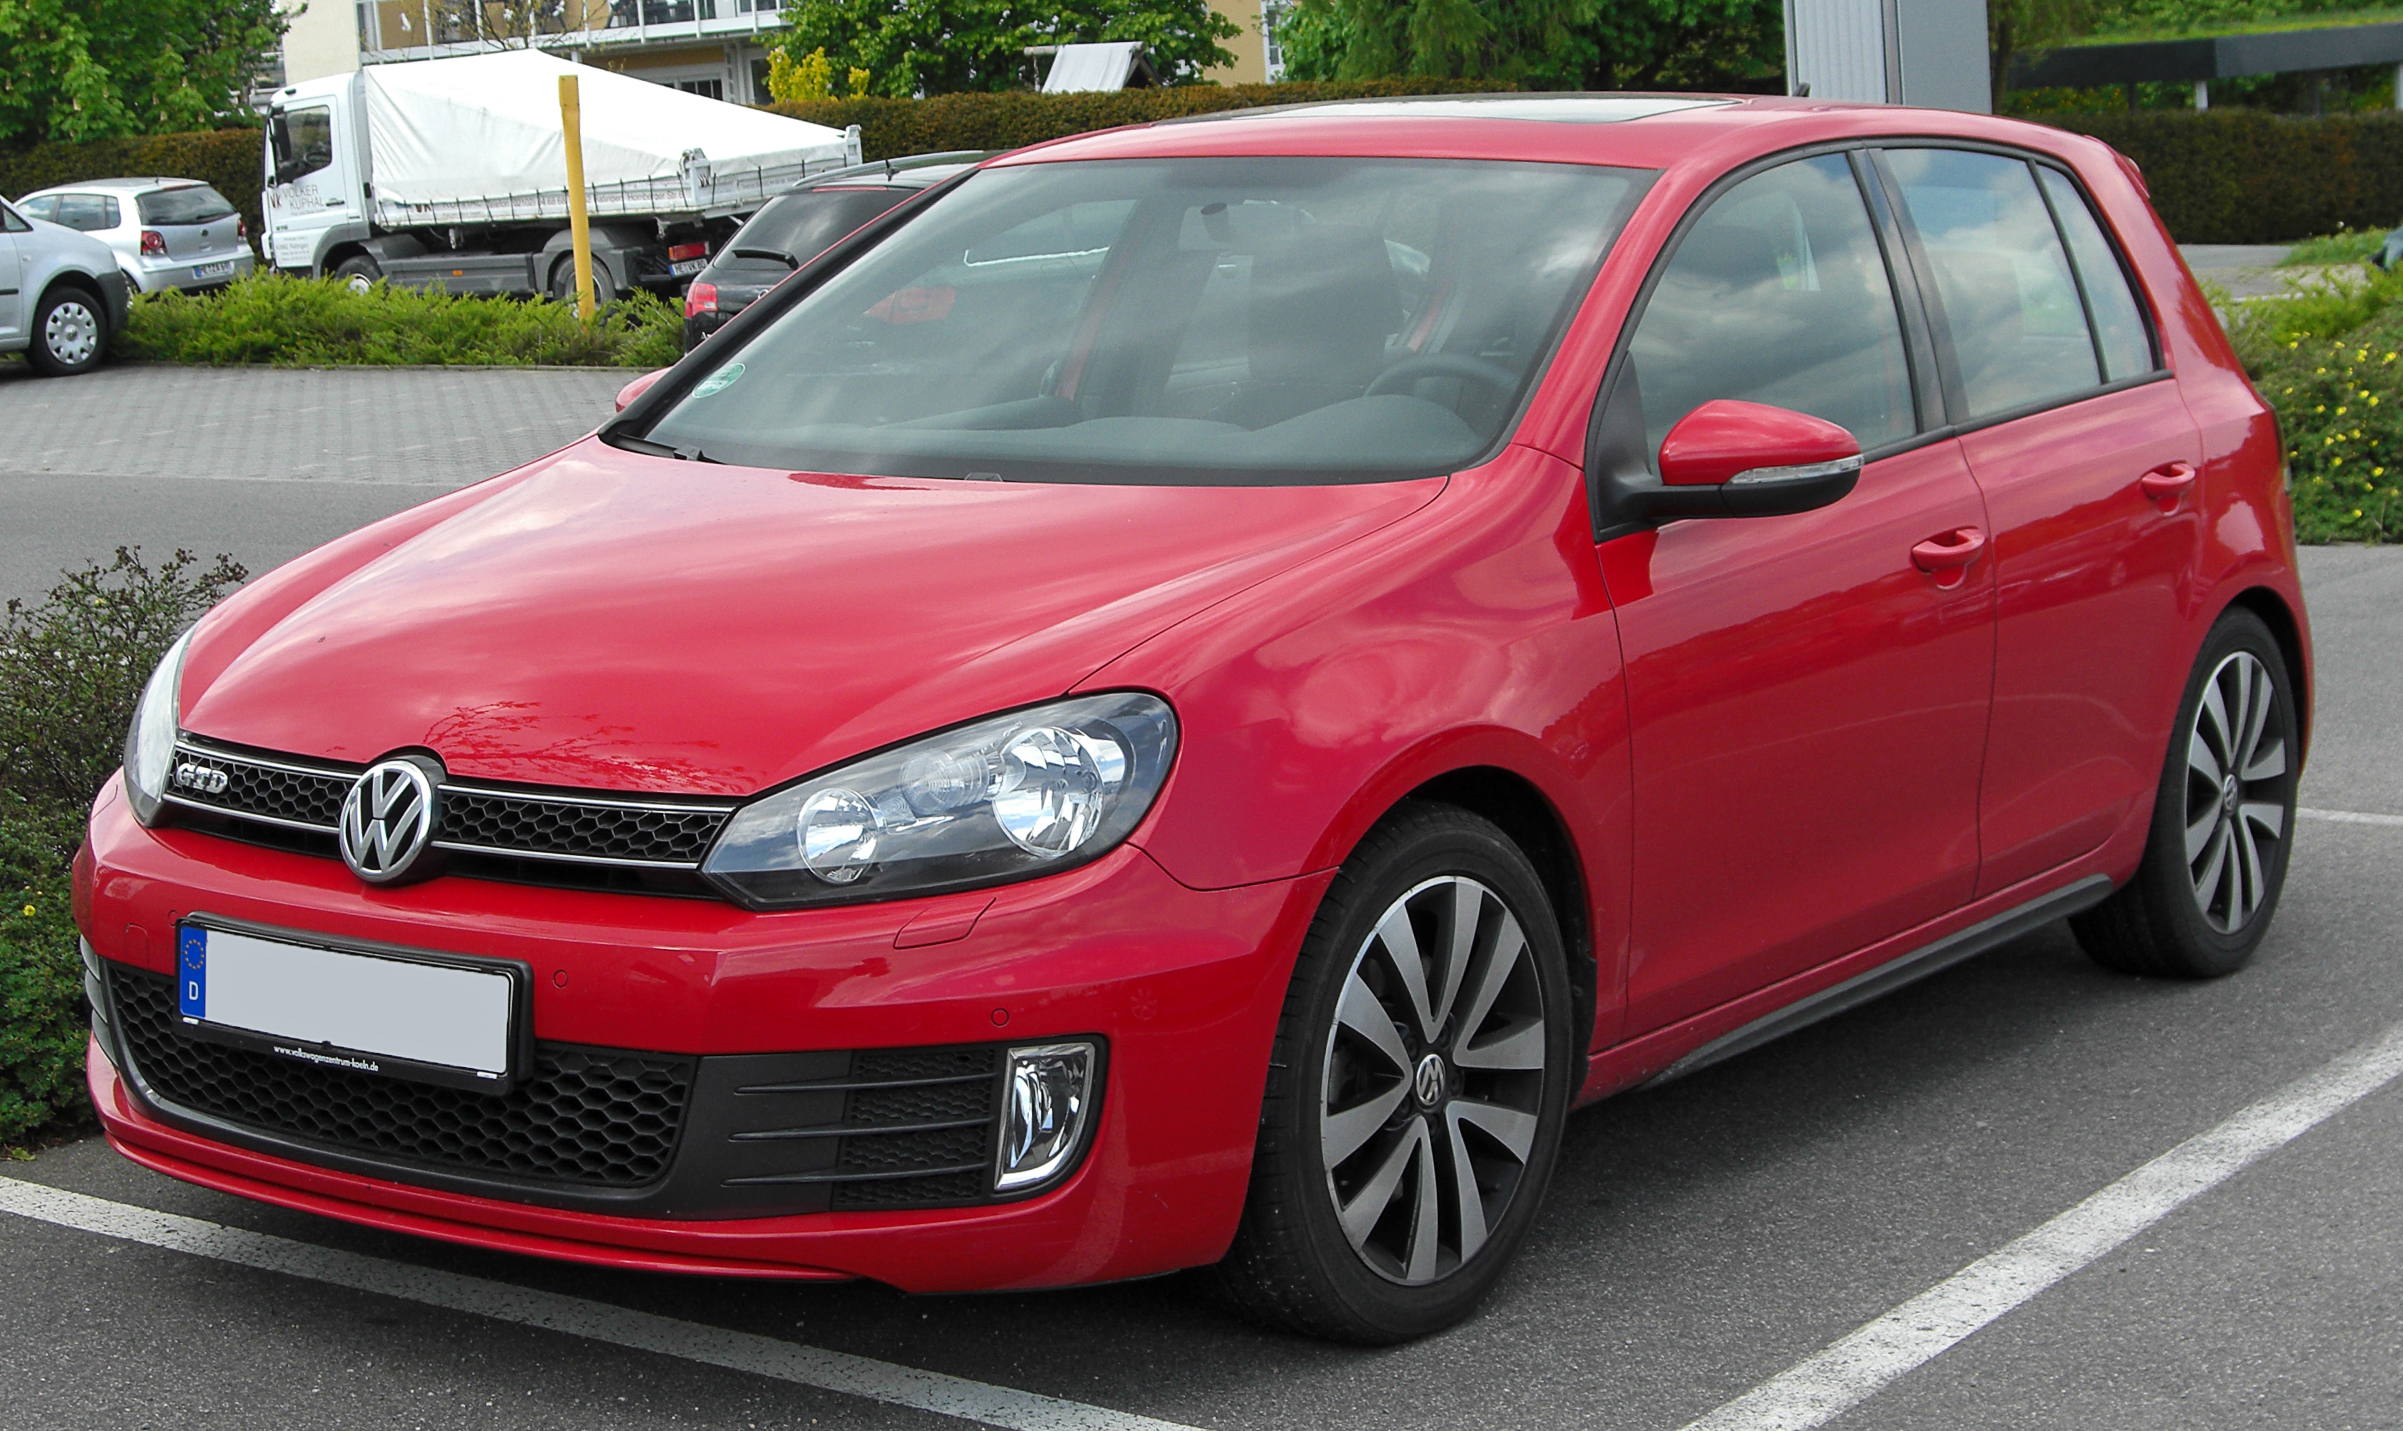 golf gti mk6 malaysia price autos post. Black Bedroom Furniture Sets. Home Design Ideas